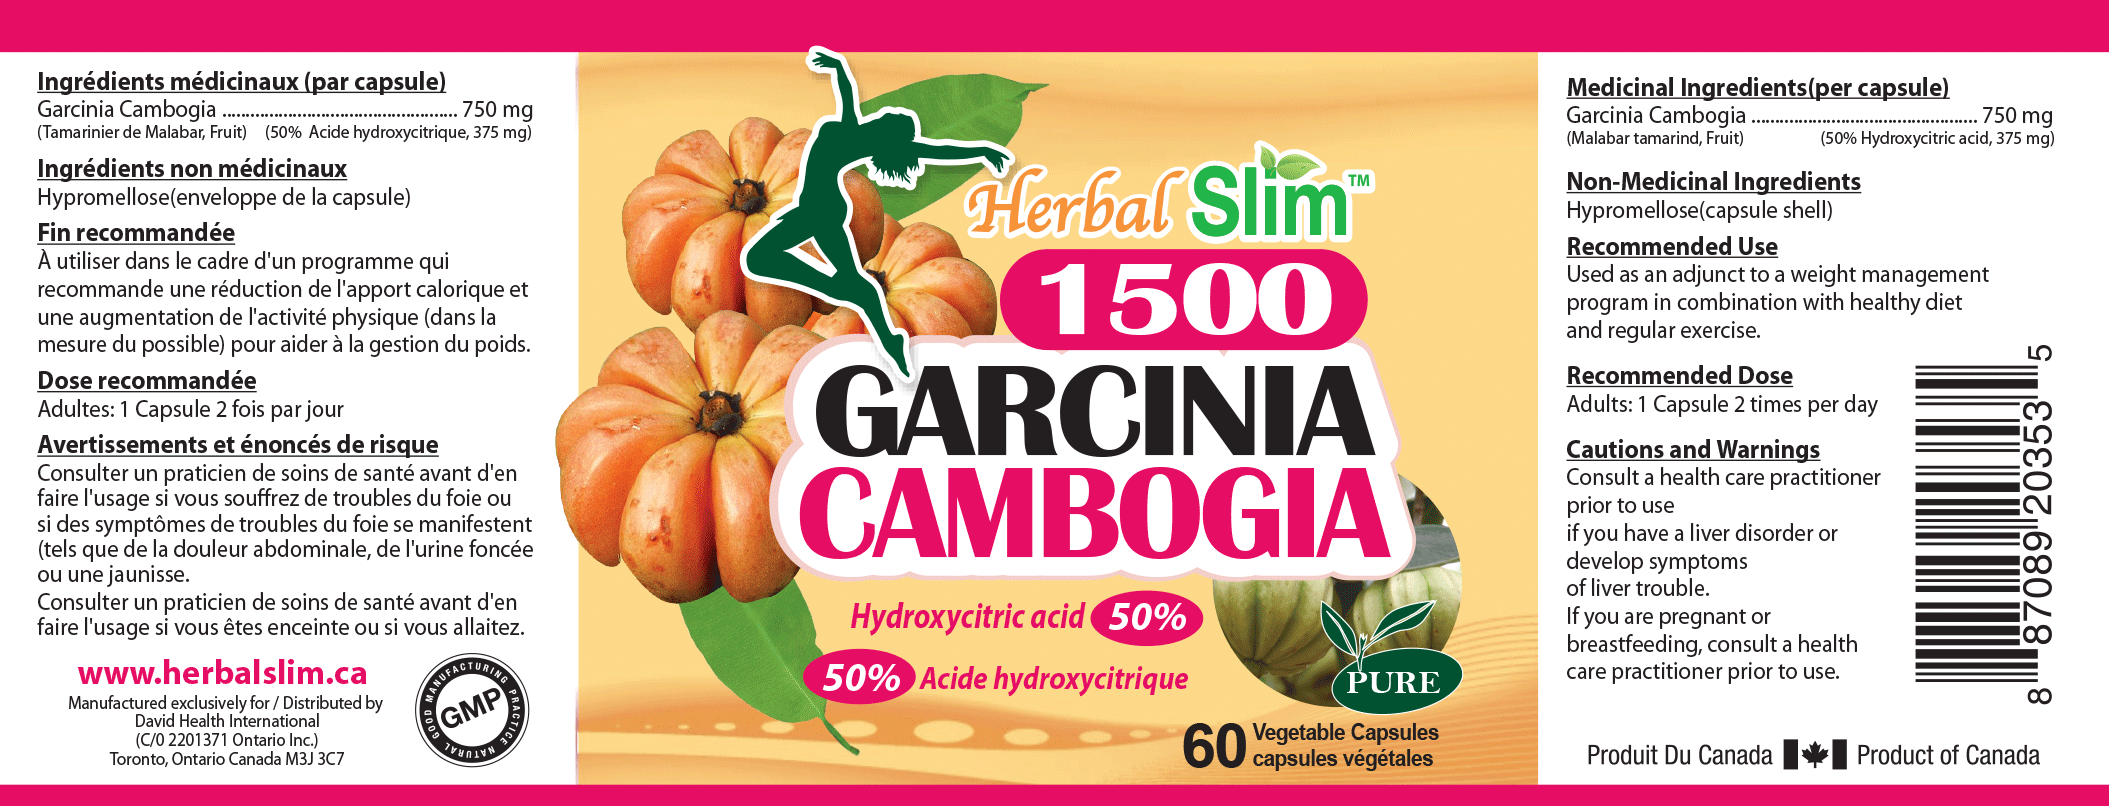 What is garcinia cambogia tablets used for